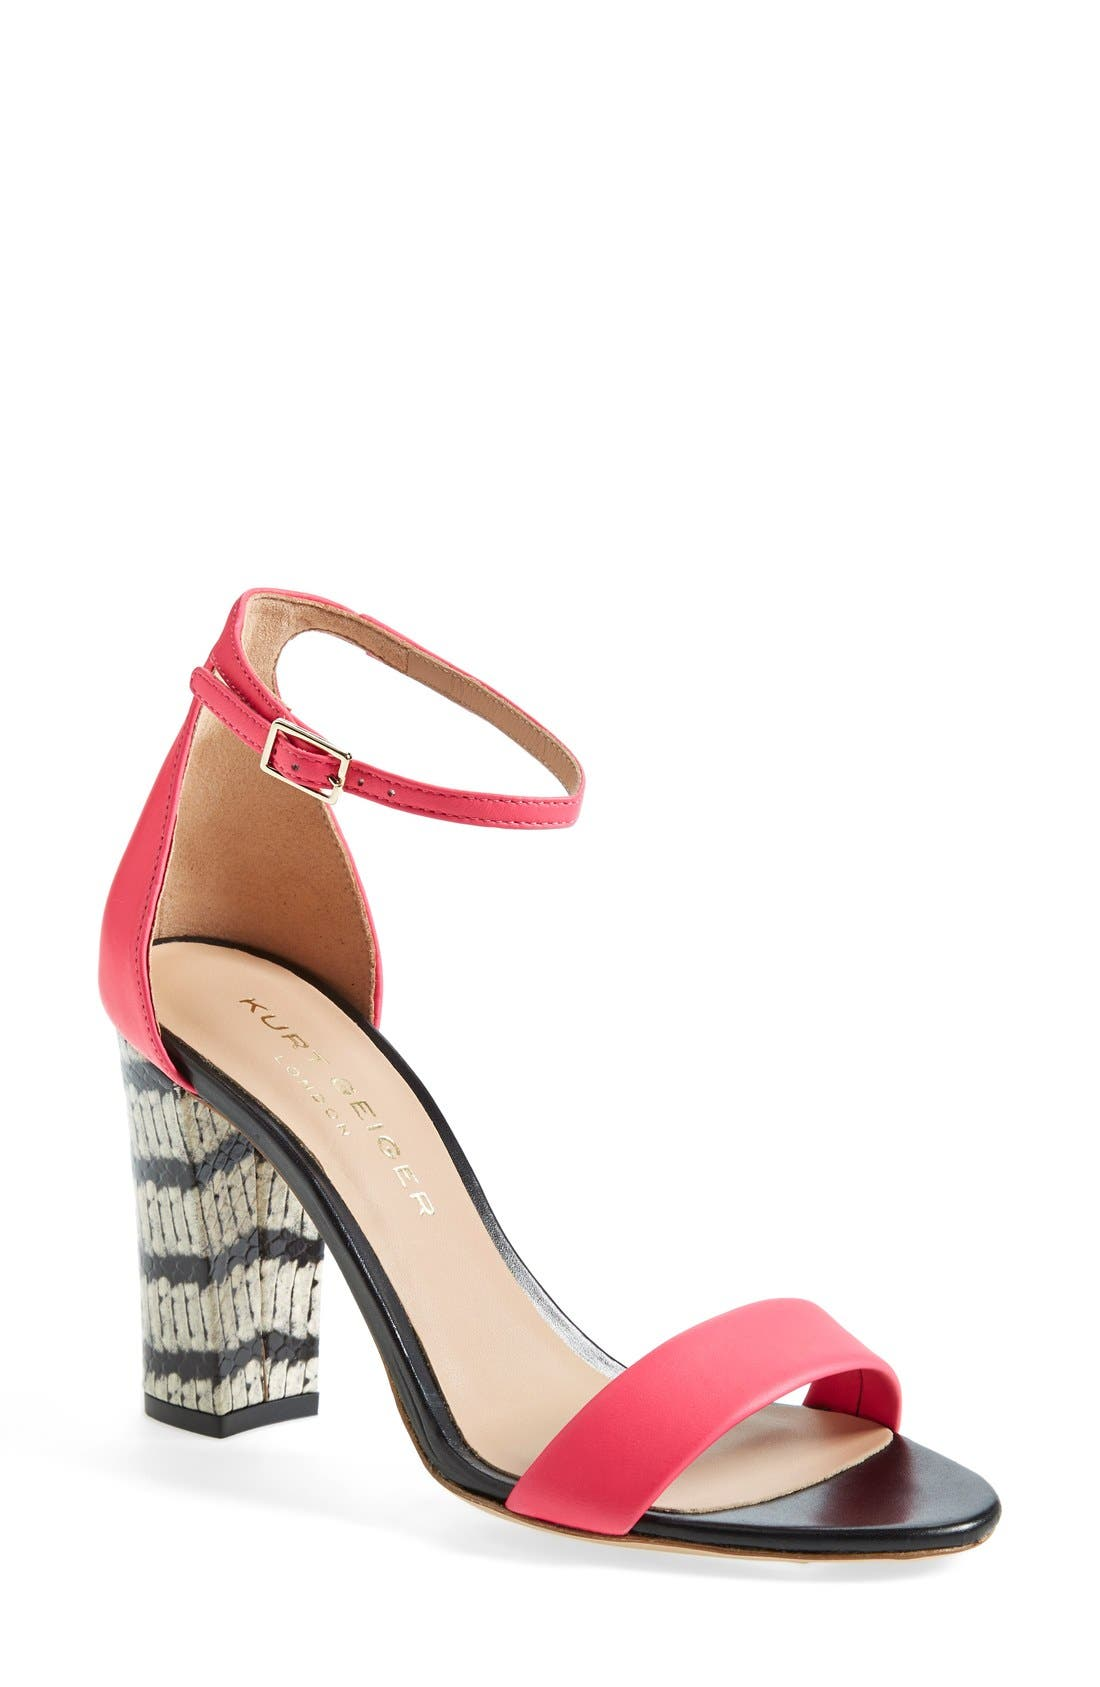 Main Image - Kurt Geiger London 'Isabella' Ankle Strap Sandal (Women)